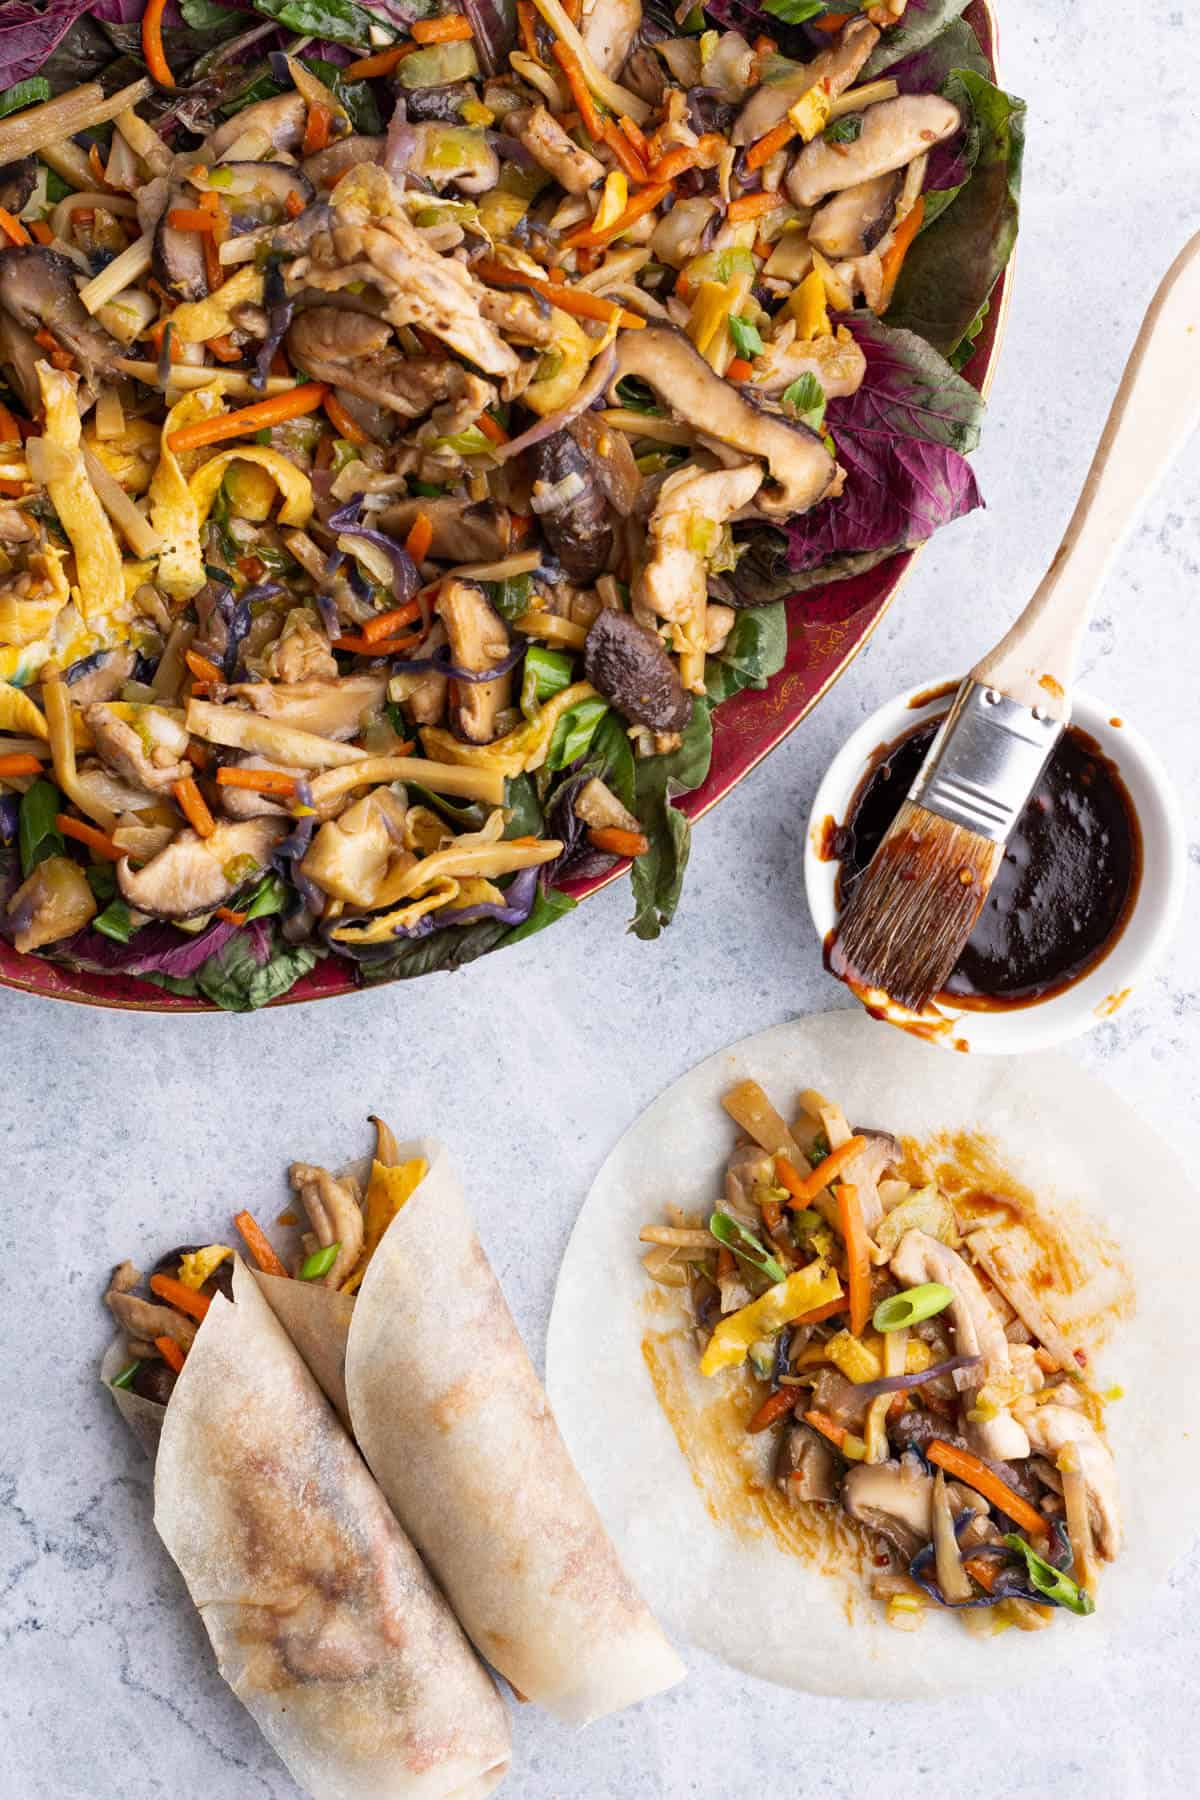 A platter full of colourful Moo Shu Chicken beside two rolled pancakes.